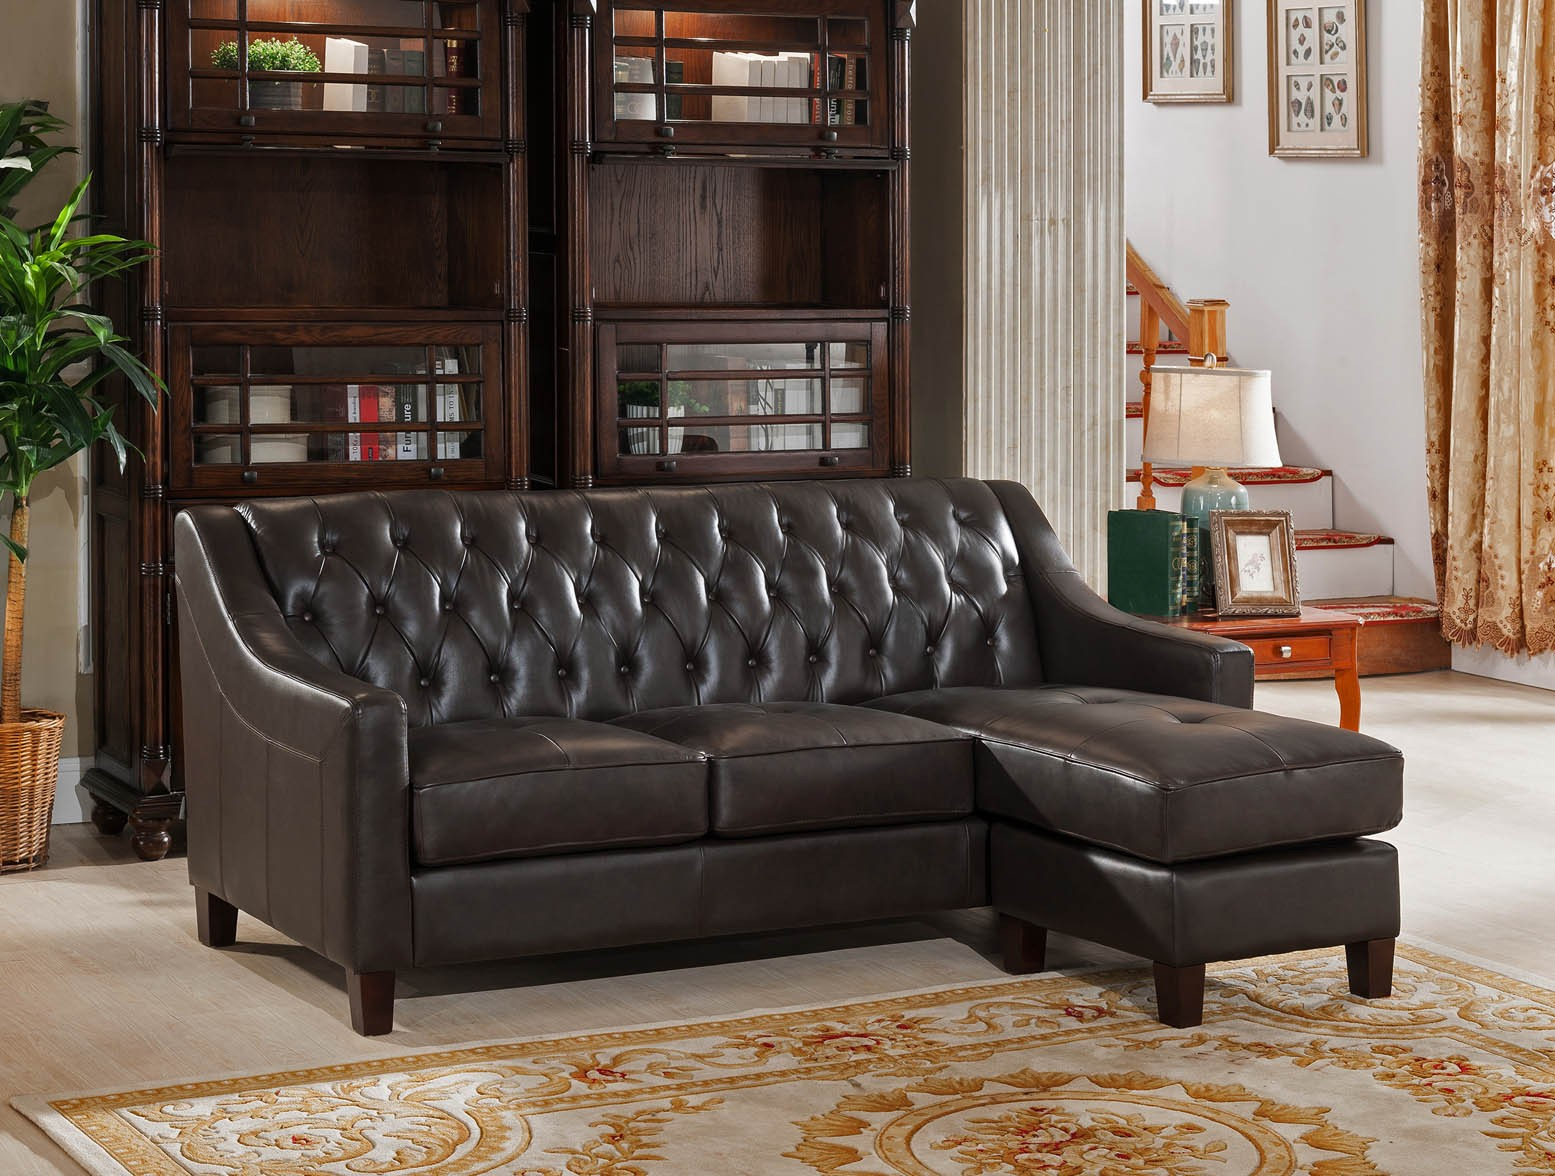 Kaitlyn brown leather reversible sofa chaise from amax for Brown leather chaise sofa